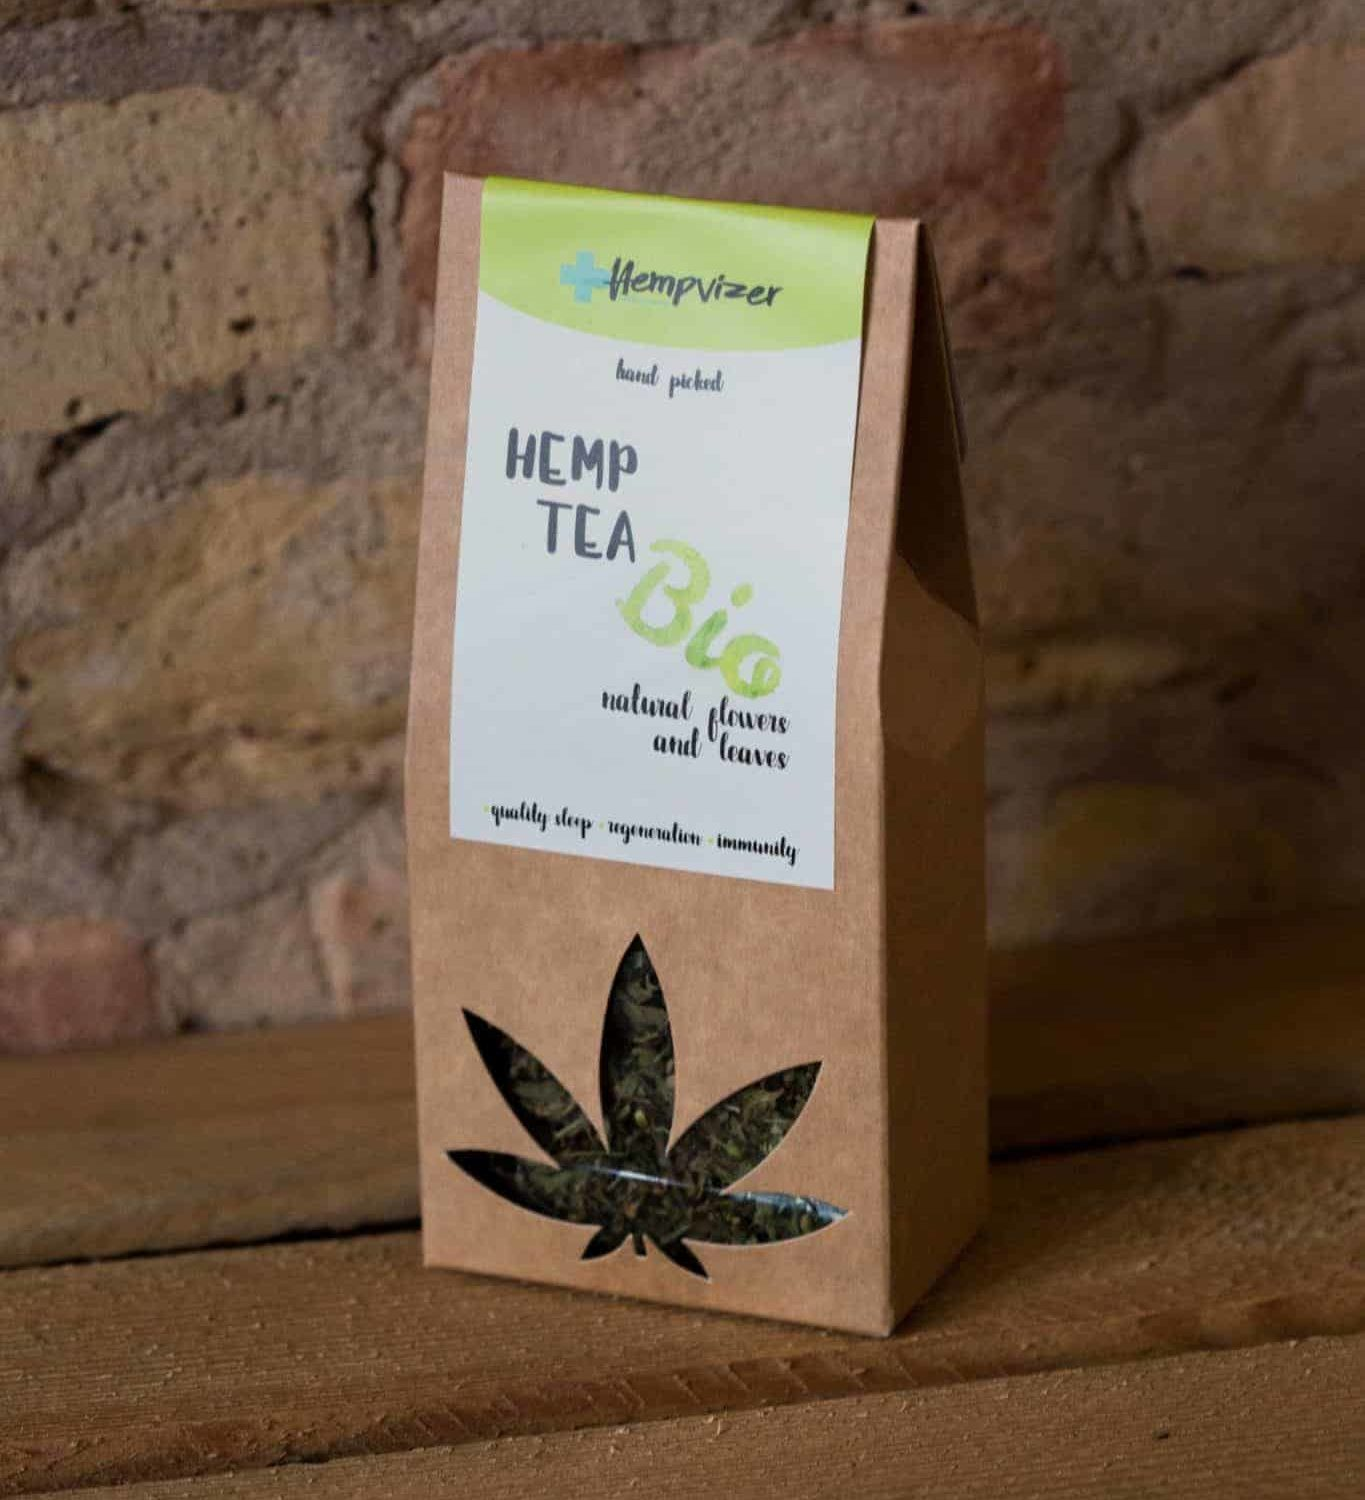 Hempvizer BIO Hemp tea - leafs and buds, 30g